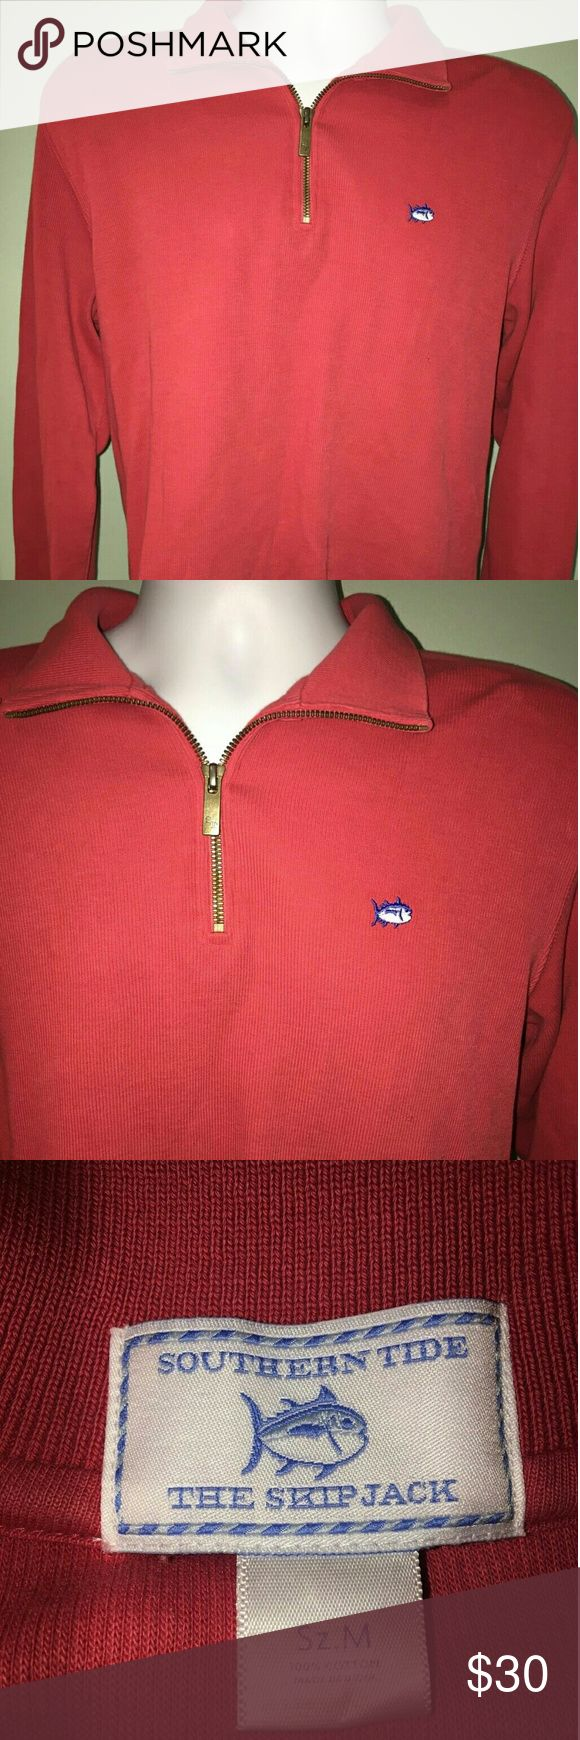 Southern Tide Long Sleeve Polo Rugby Shirt Southern Tide Long Sleeve Polo Rugby Shirt Southern Tide  Shirts Polos